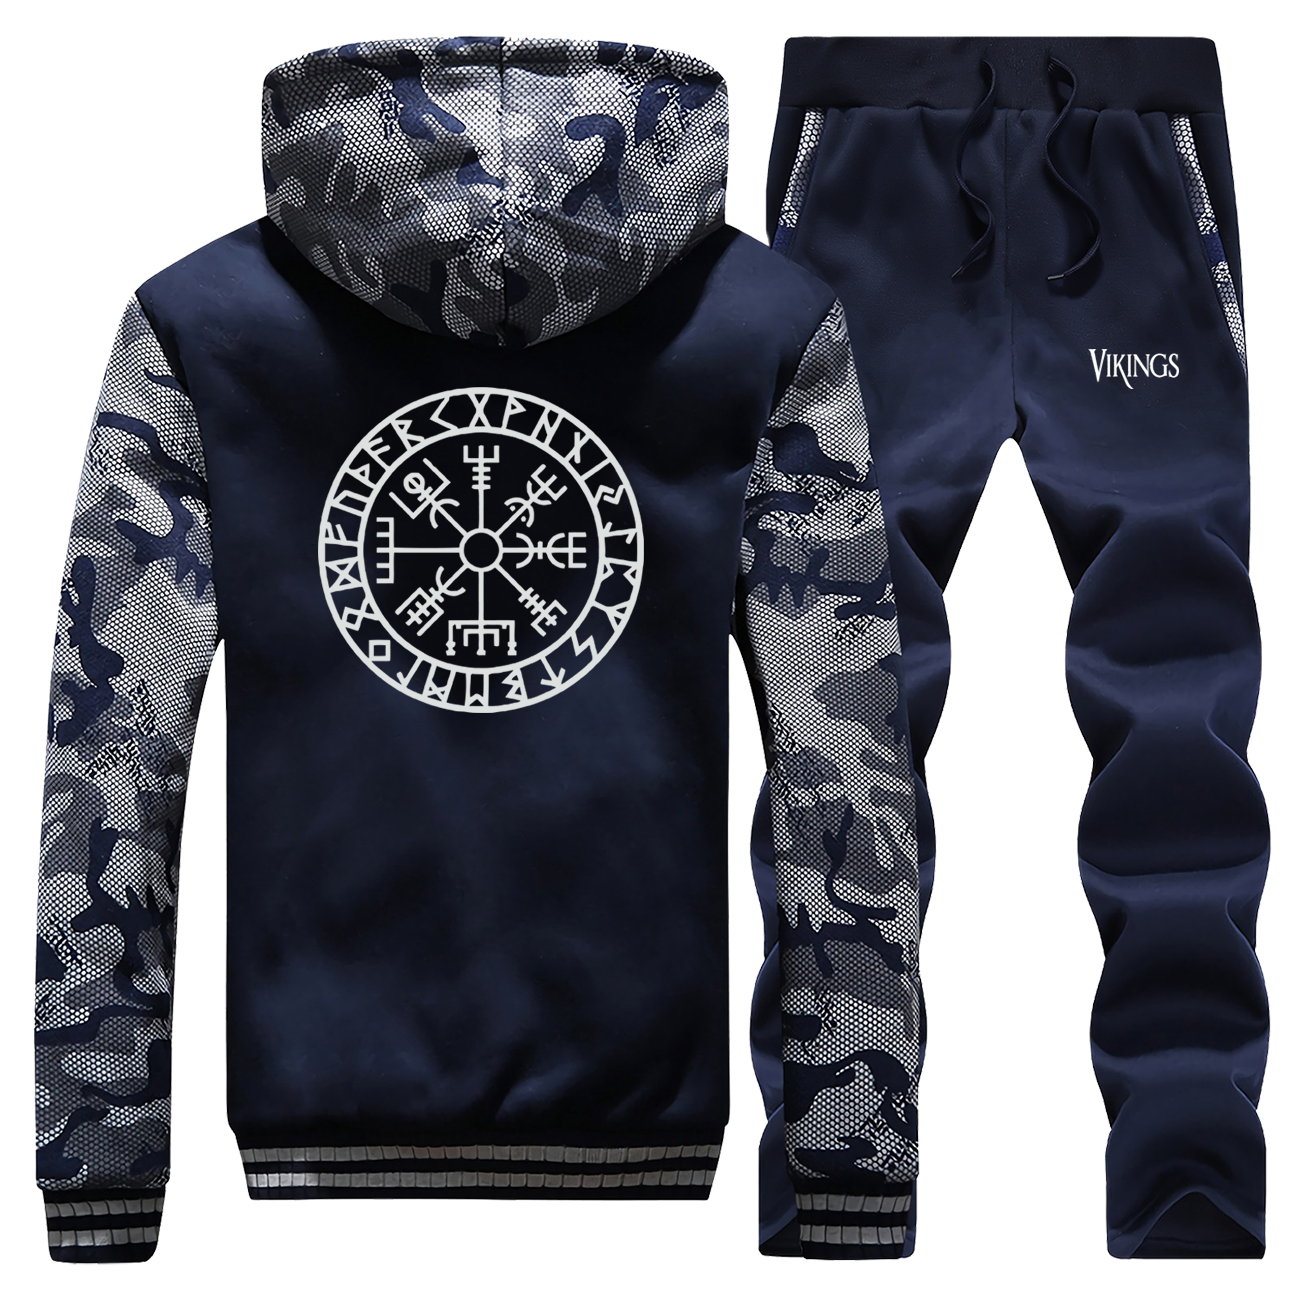 TV Show The Viking Printed Camo Jacket Vikings Print Thick Male Set Sets Fleece Warm Men's Sports Suit Fashion Winter Streetwear